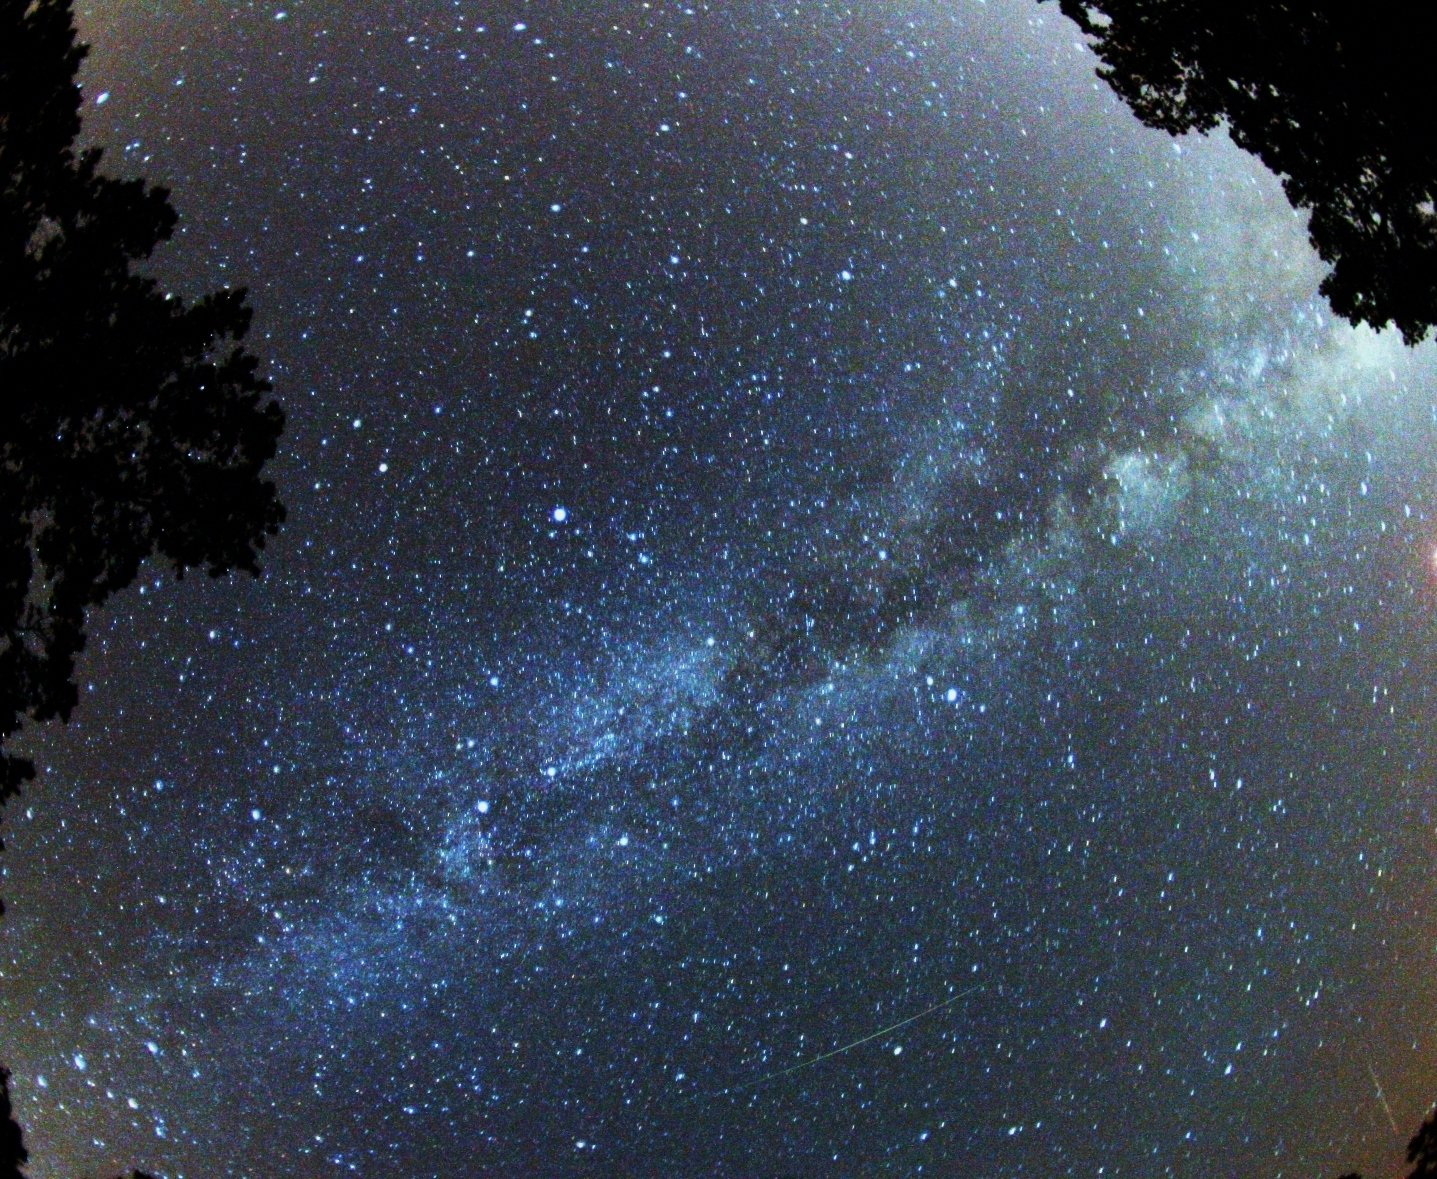 The Milky Way. Photo by Brocken Inaglory, Wikimedia Commons.